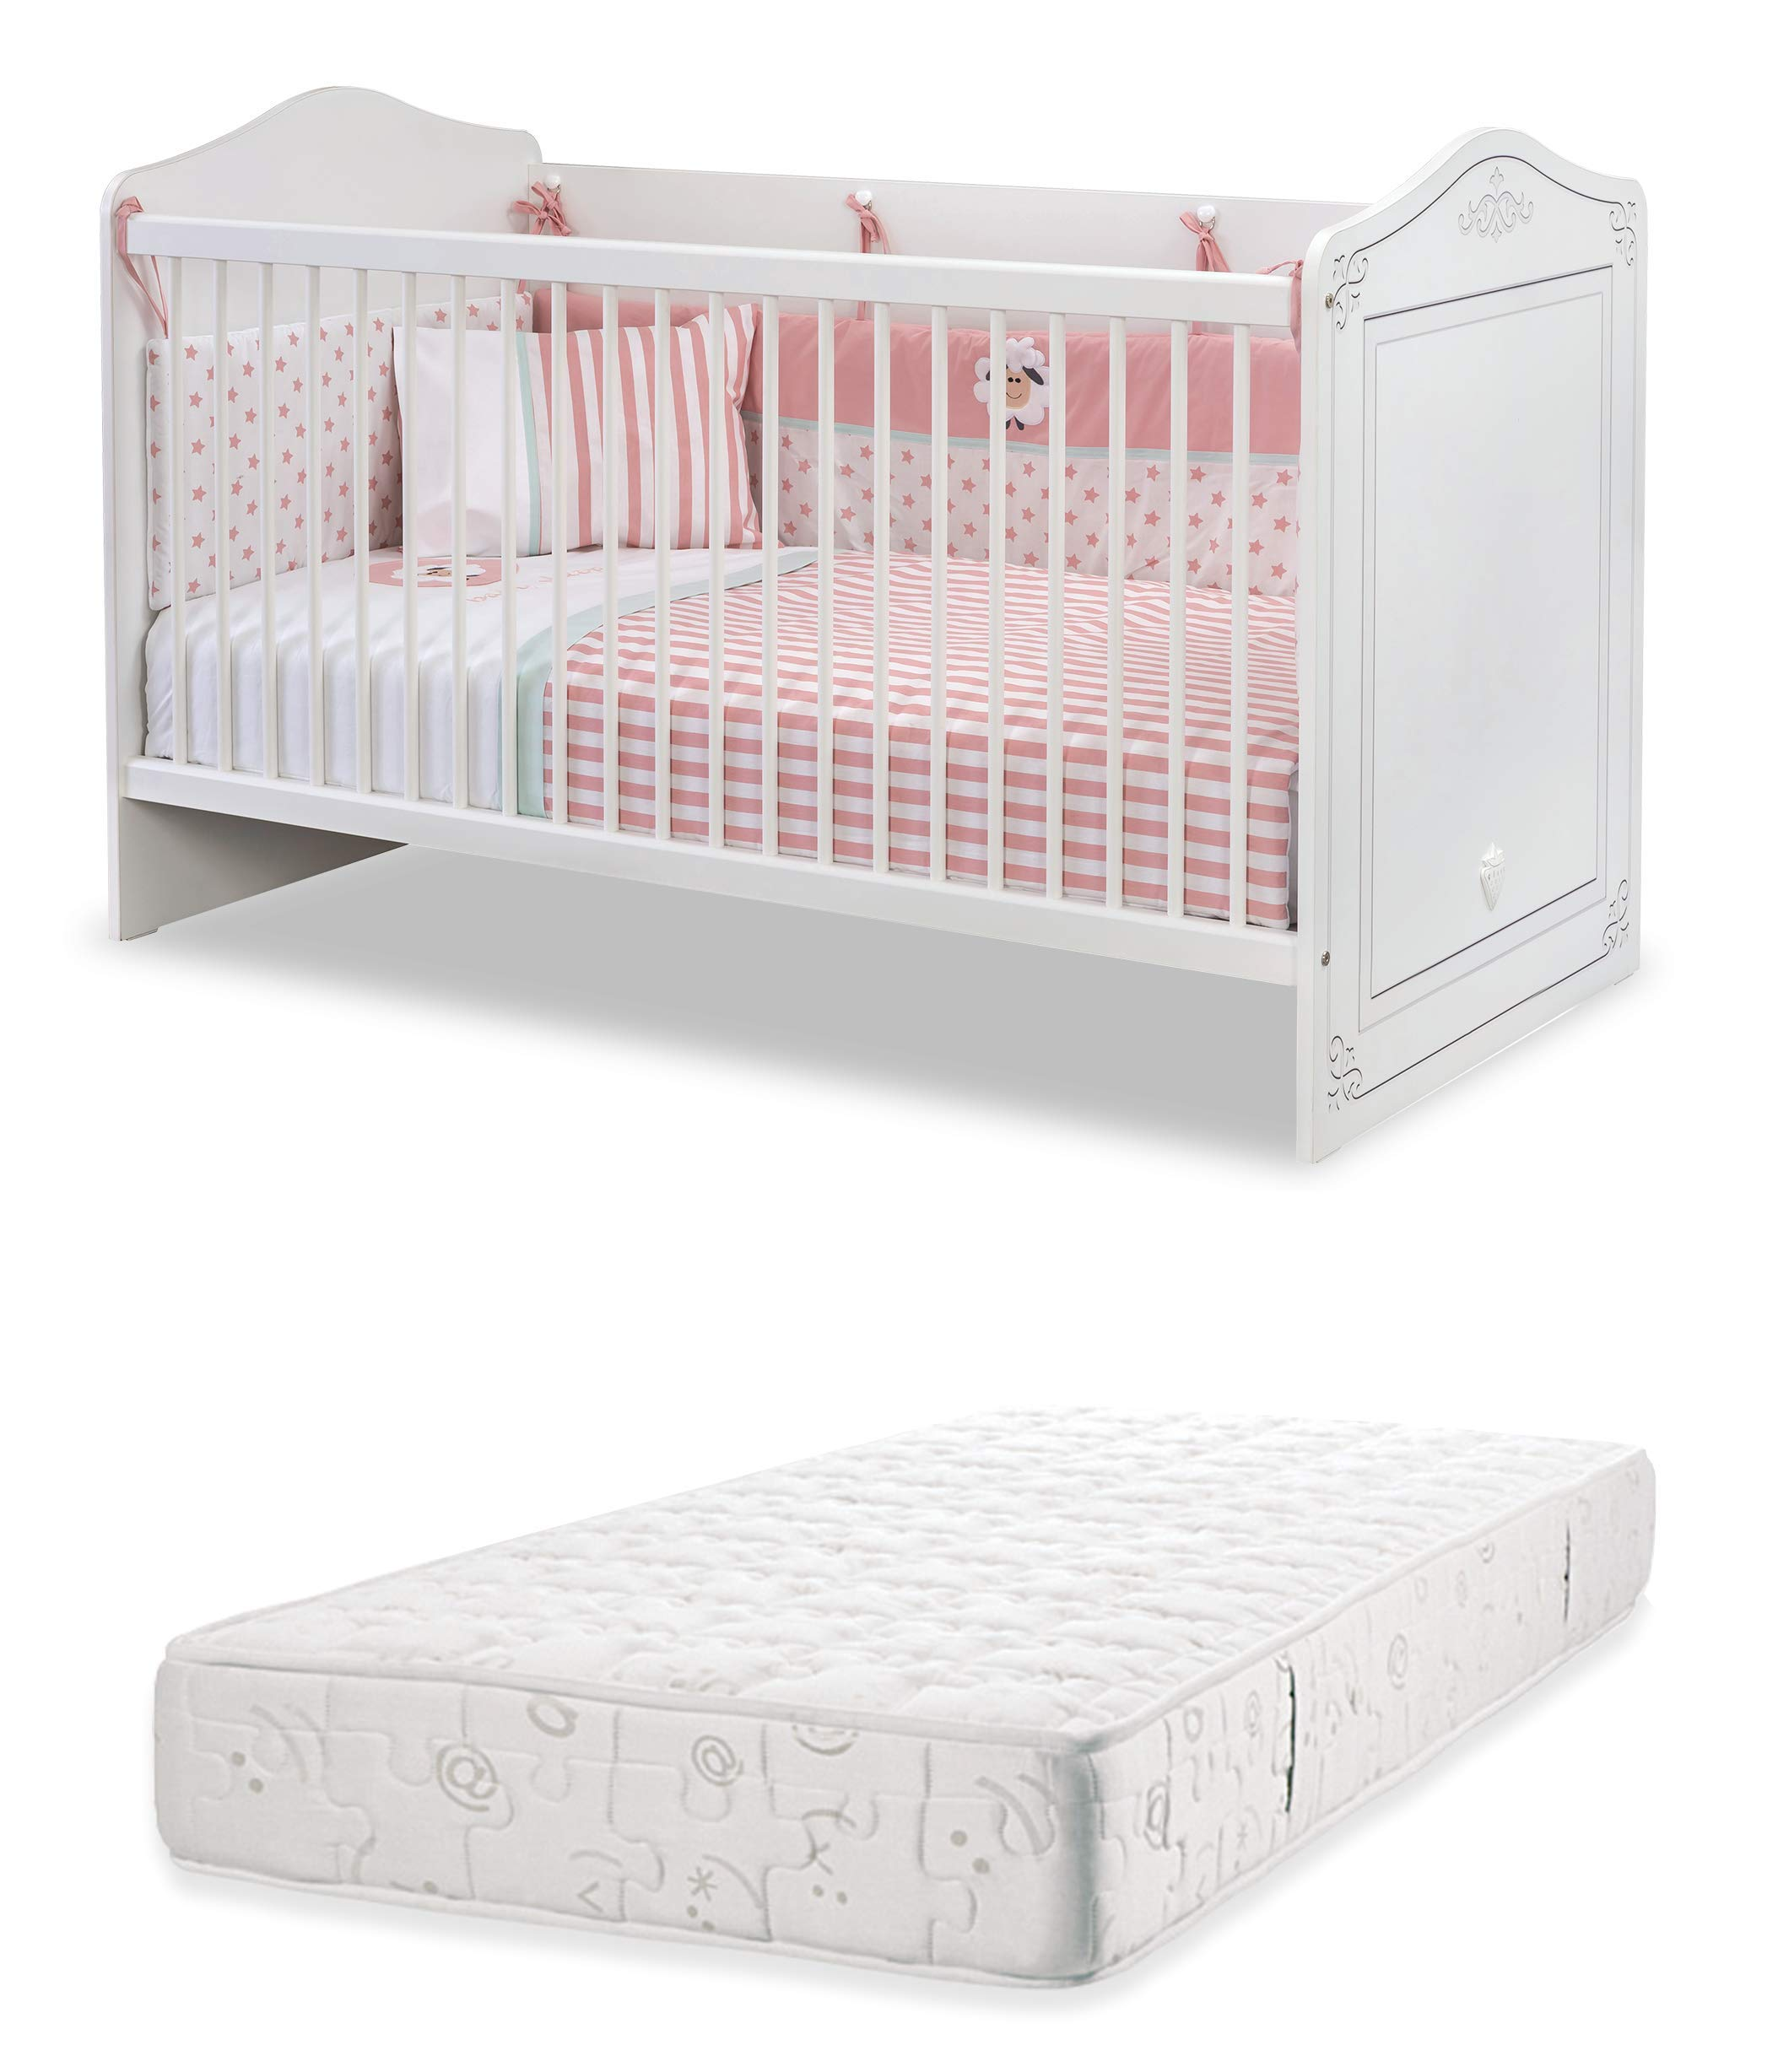 Dafnedesign.com - Cot early childhood bedroom for newborn or toddler - A baby cot with safety cage with poles - Includes a mattress - Width: 146 cm Height: 92 cm depth: 78 cm - [Series: Daphne-Classical] - (DF11) Dafnedesign 1 bed early childhood bedroom Baby bed Safety cage with poles 1